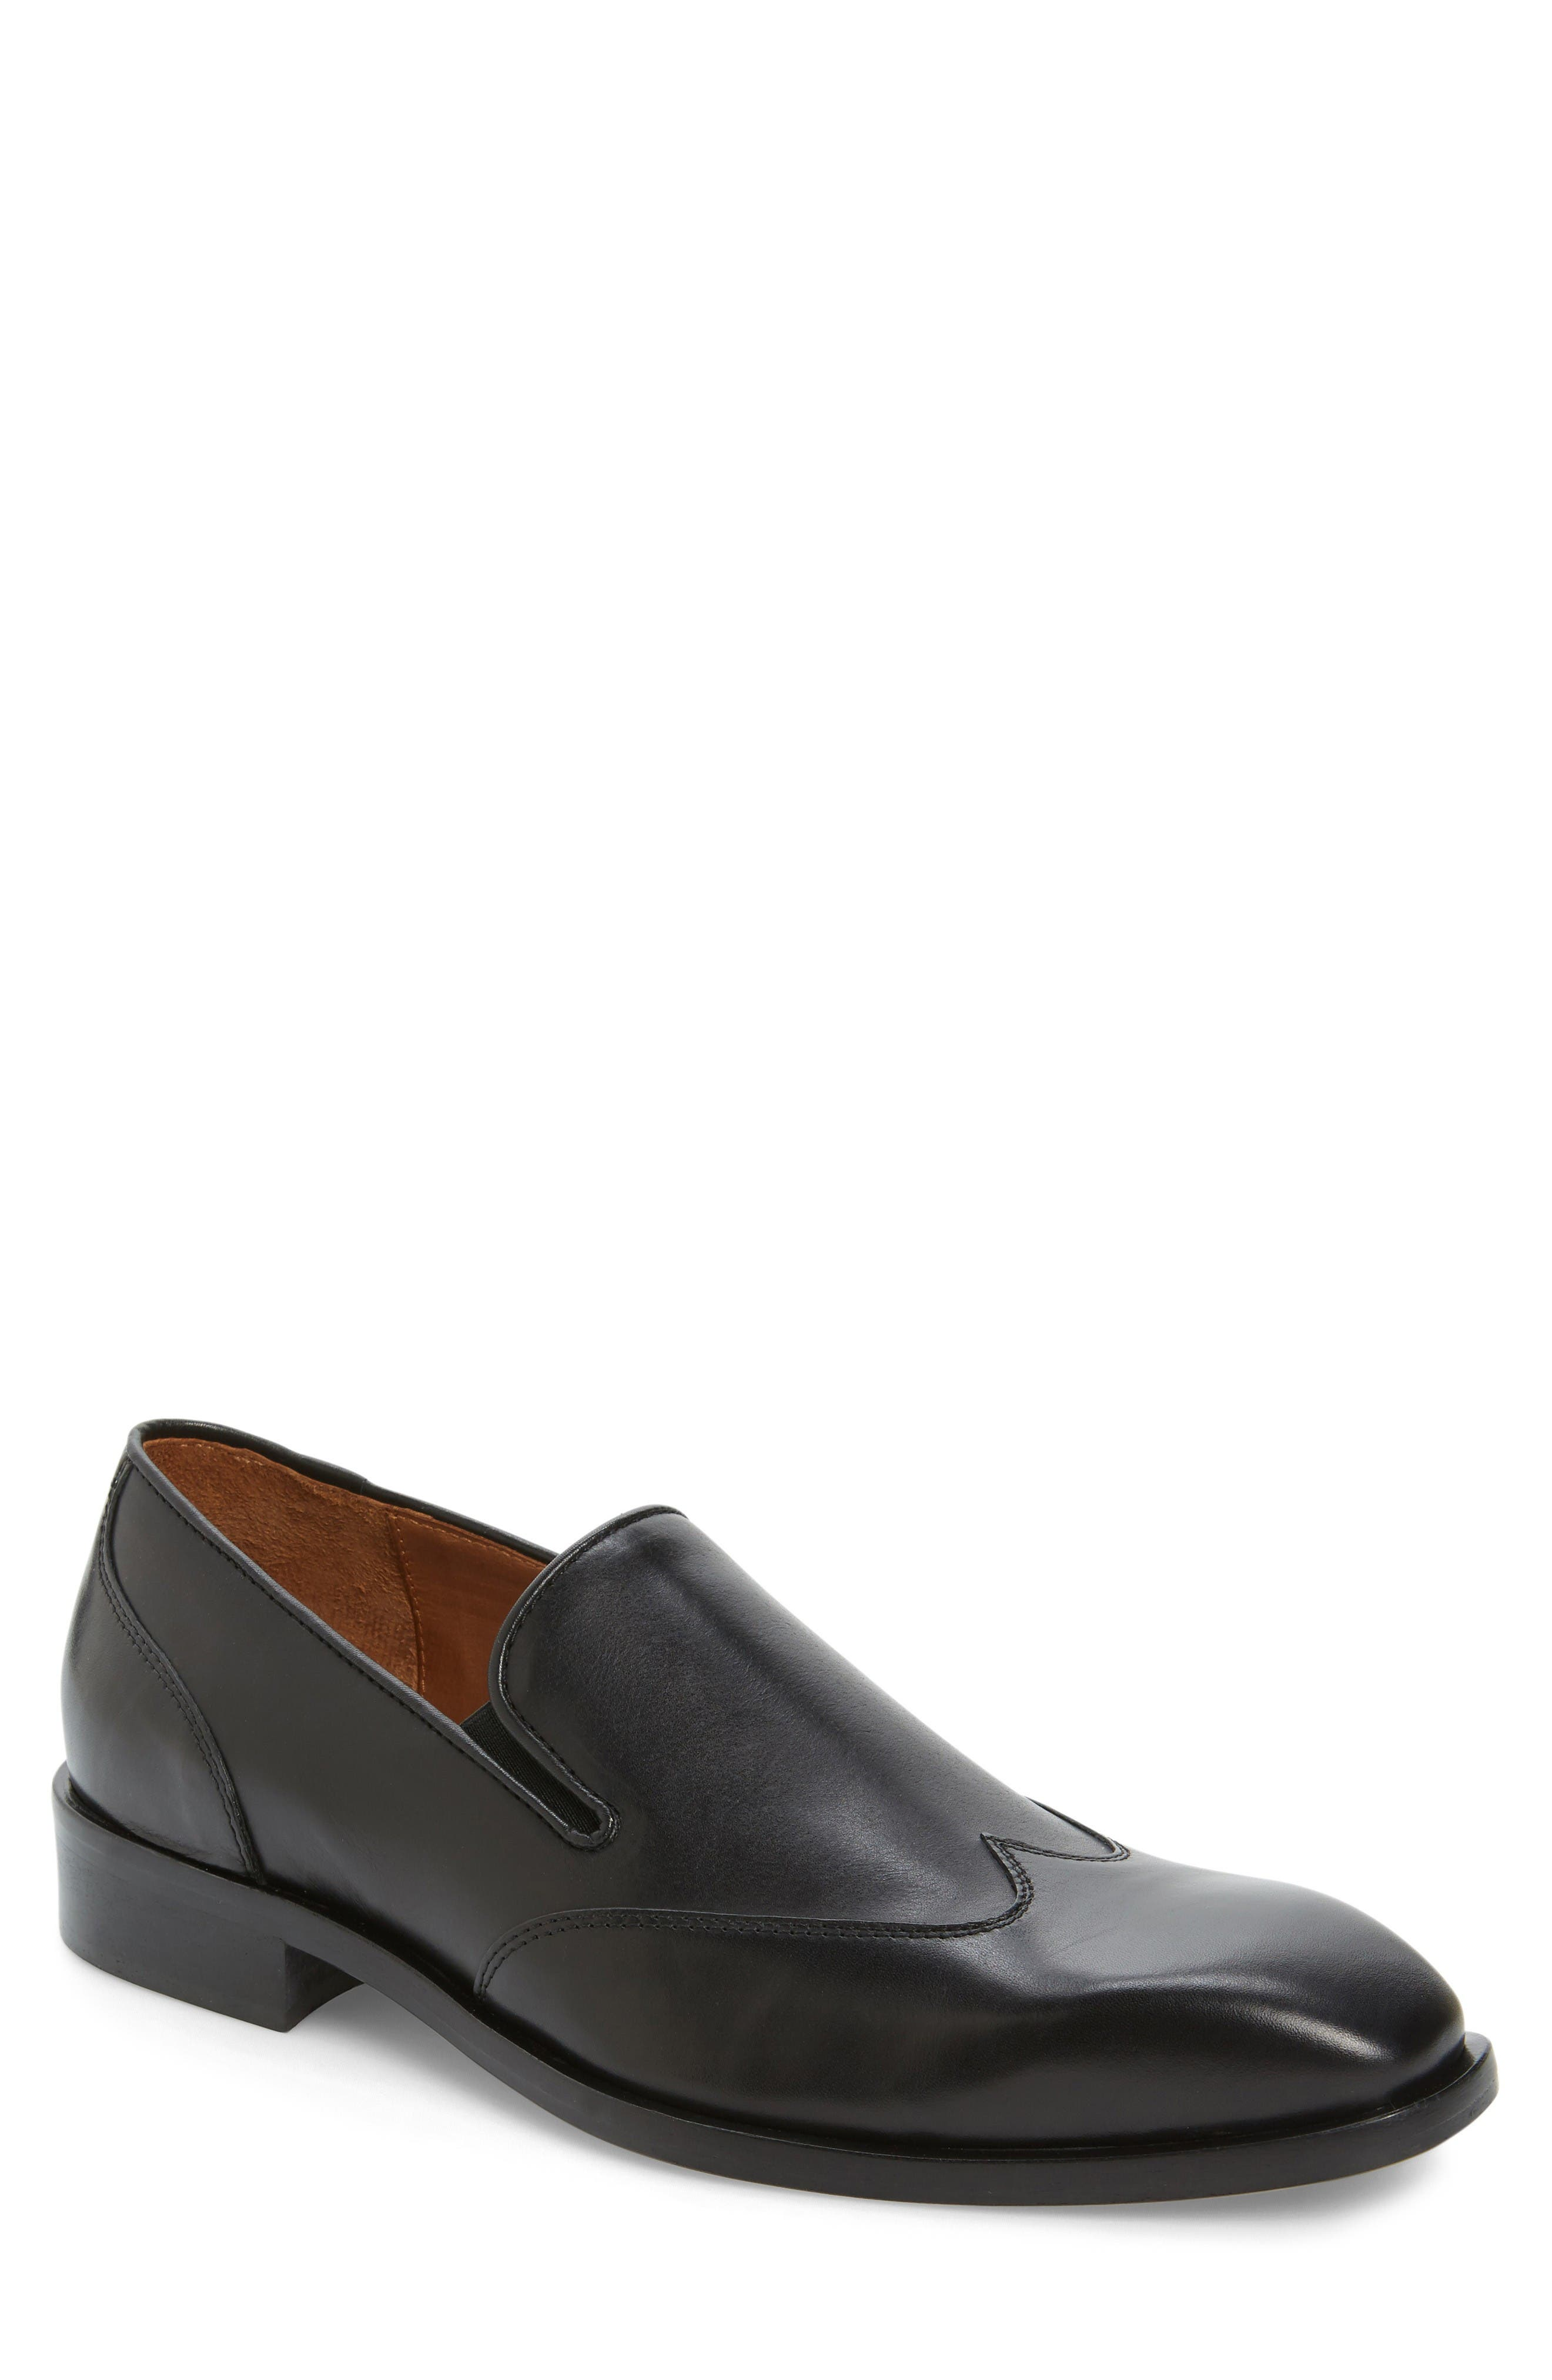 Donald J Pliner Valente Venetian Loafer (Men)